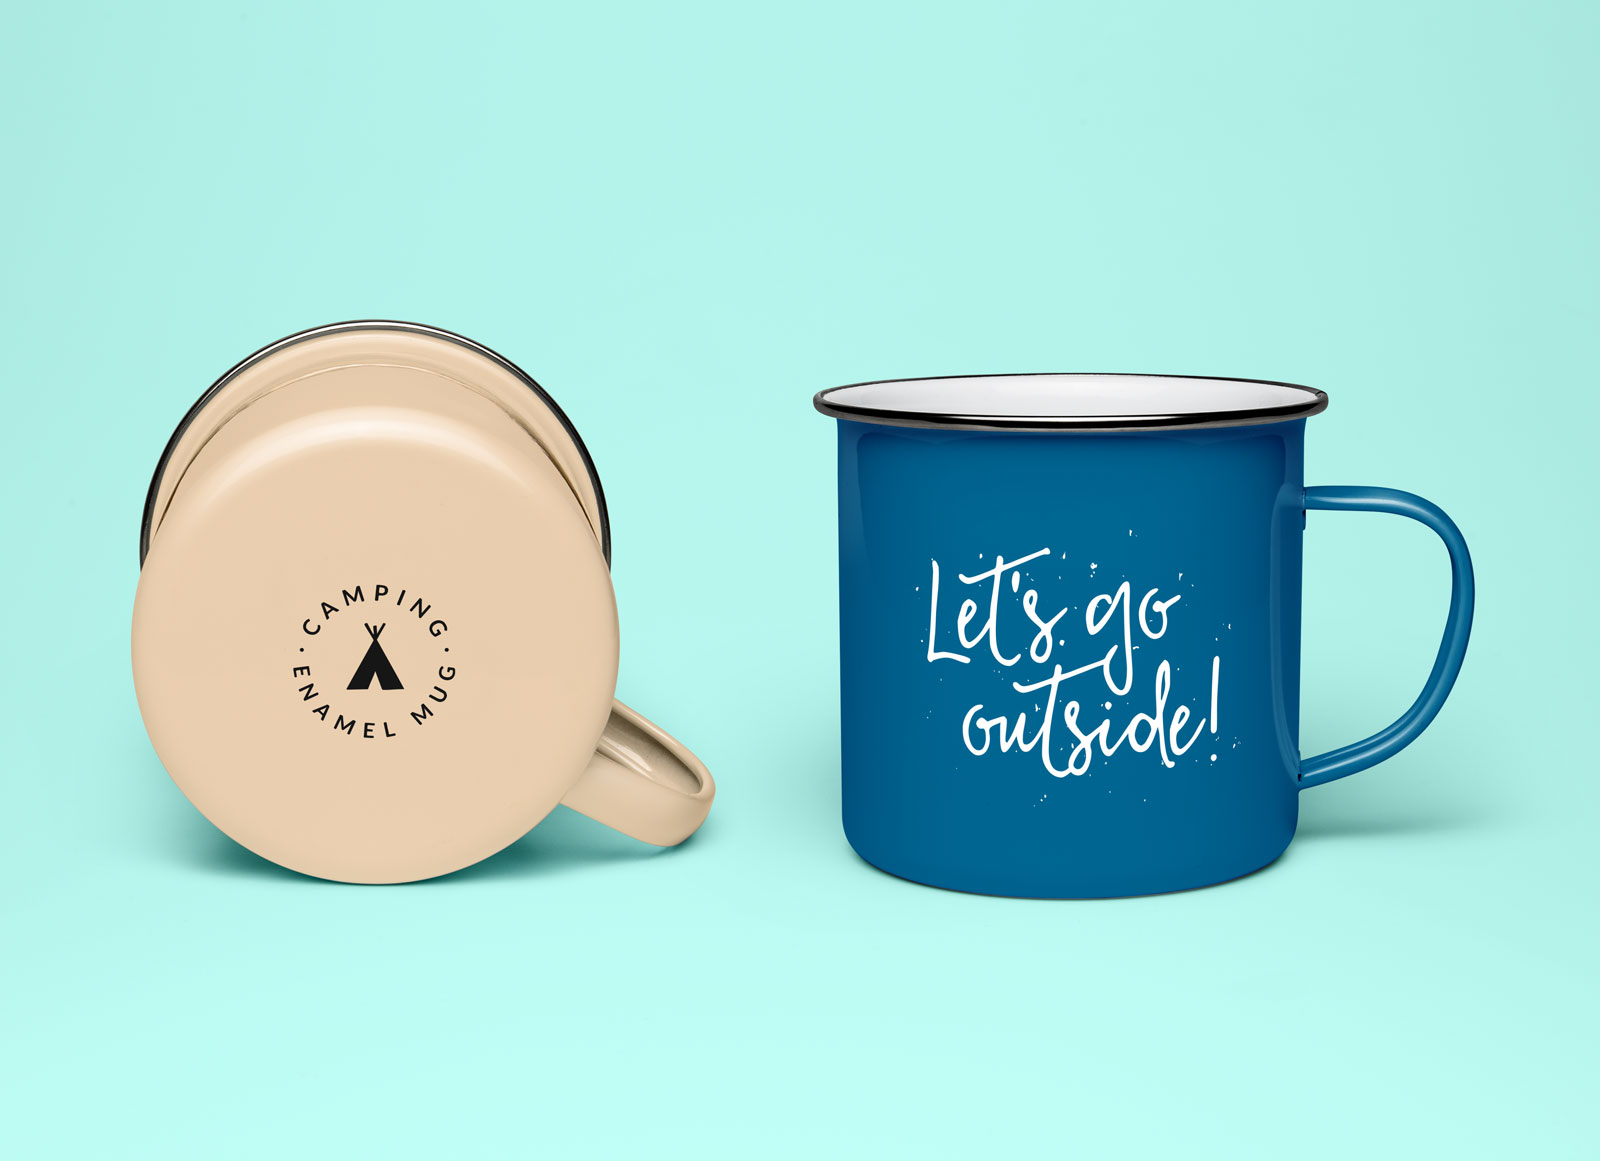 Free-Enameled-Coffee-Tea-Cup-Mockup-PSD